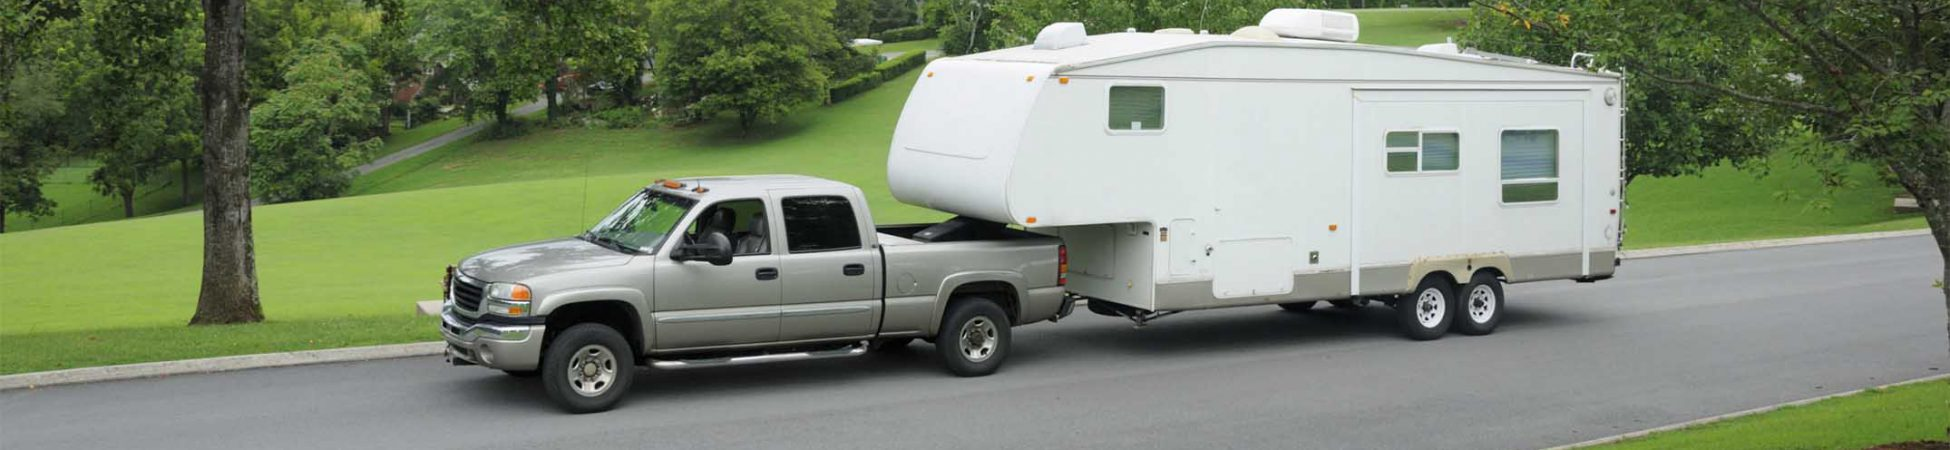 """Recreational vehicle fifth wheel travel trailer being towed by pickup truck, parked on the road in the mountains. Horizontal with copy space above."""